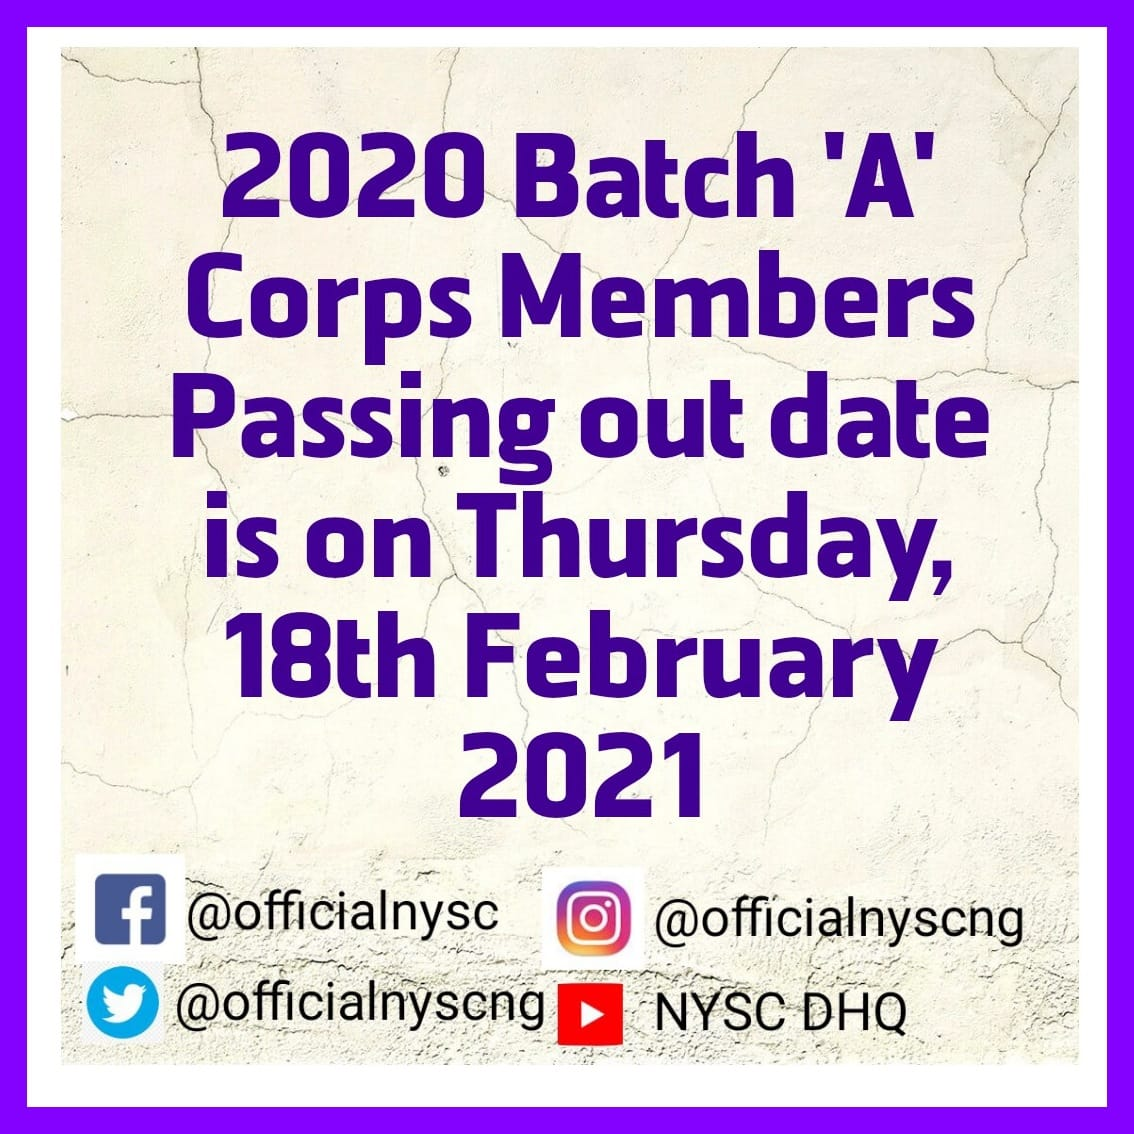 NYSC Passing Out Events for 2020 Batch 'A' Corpers